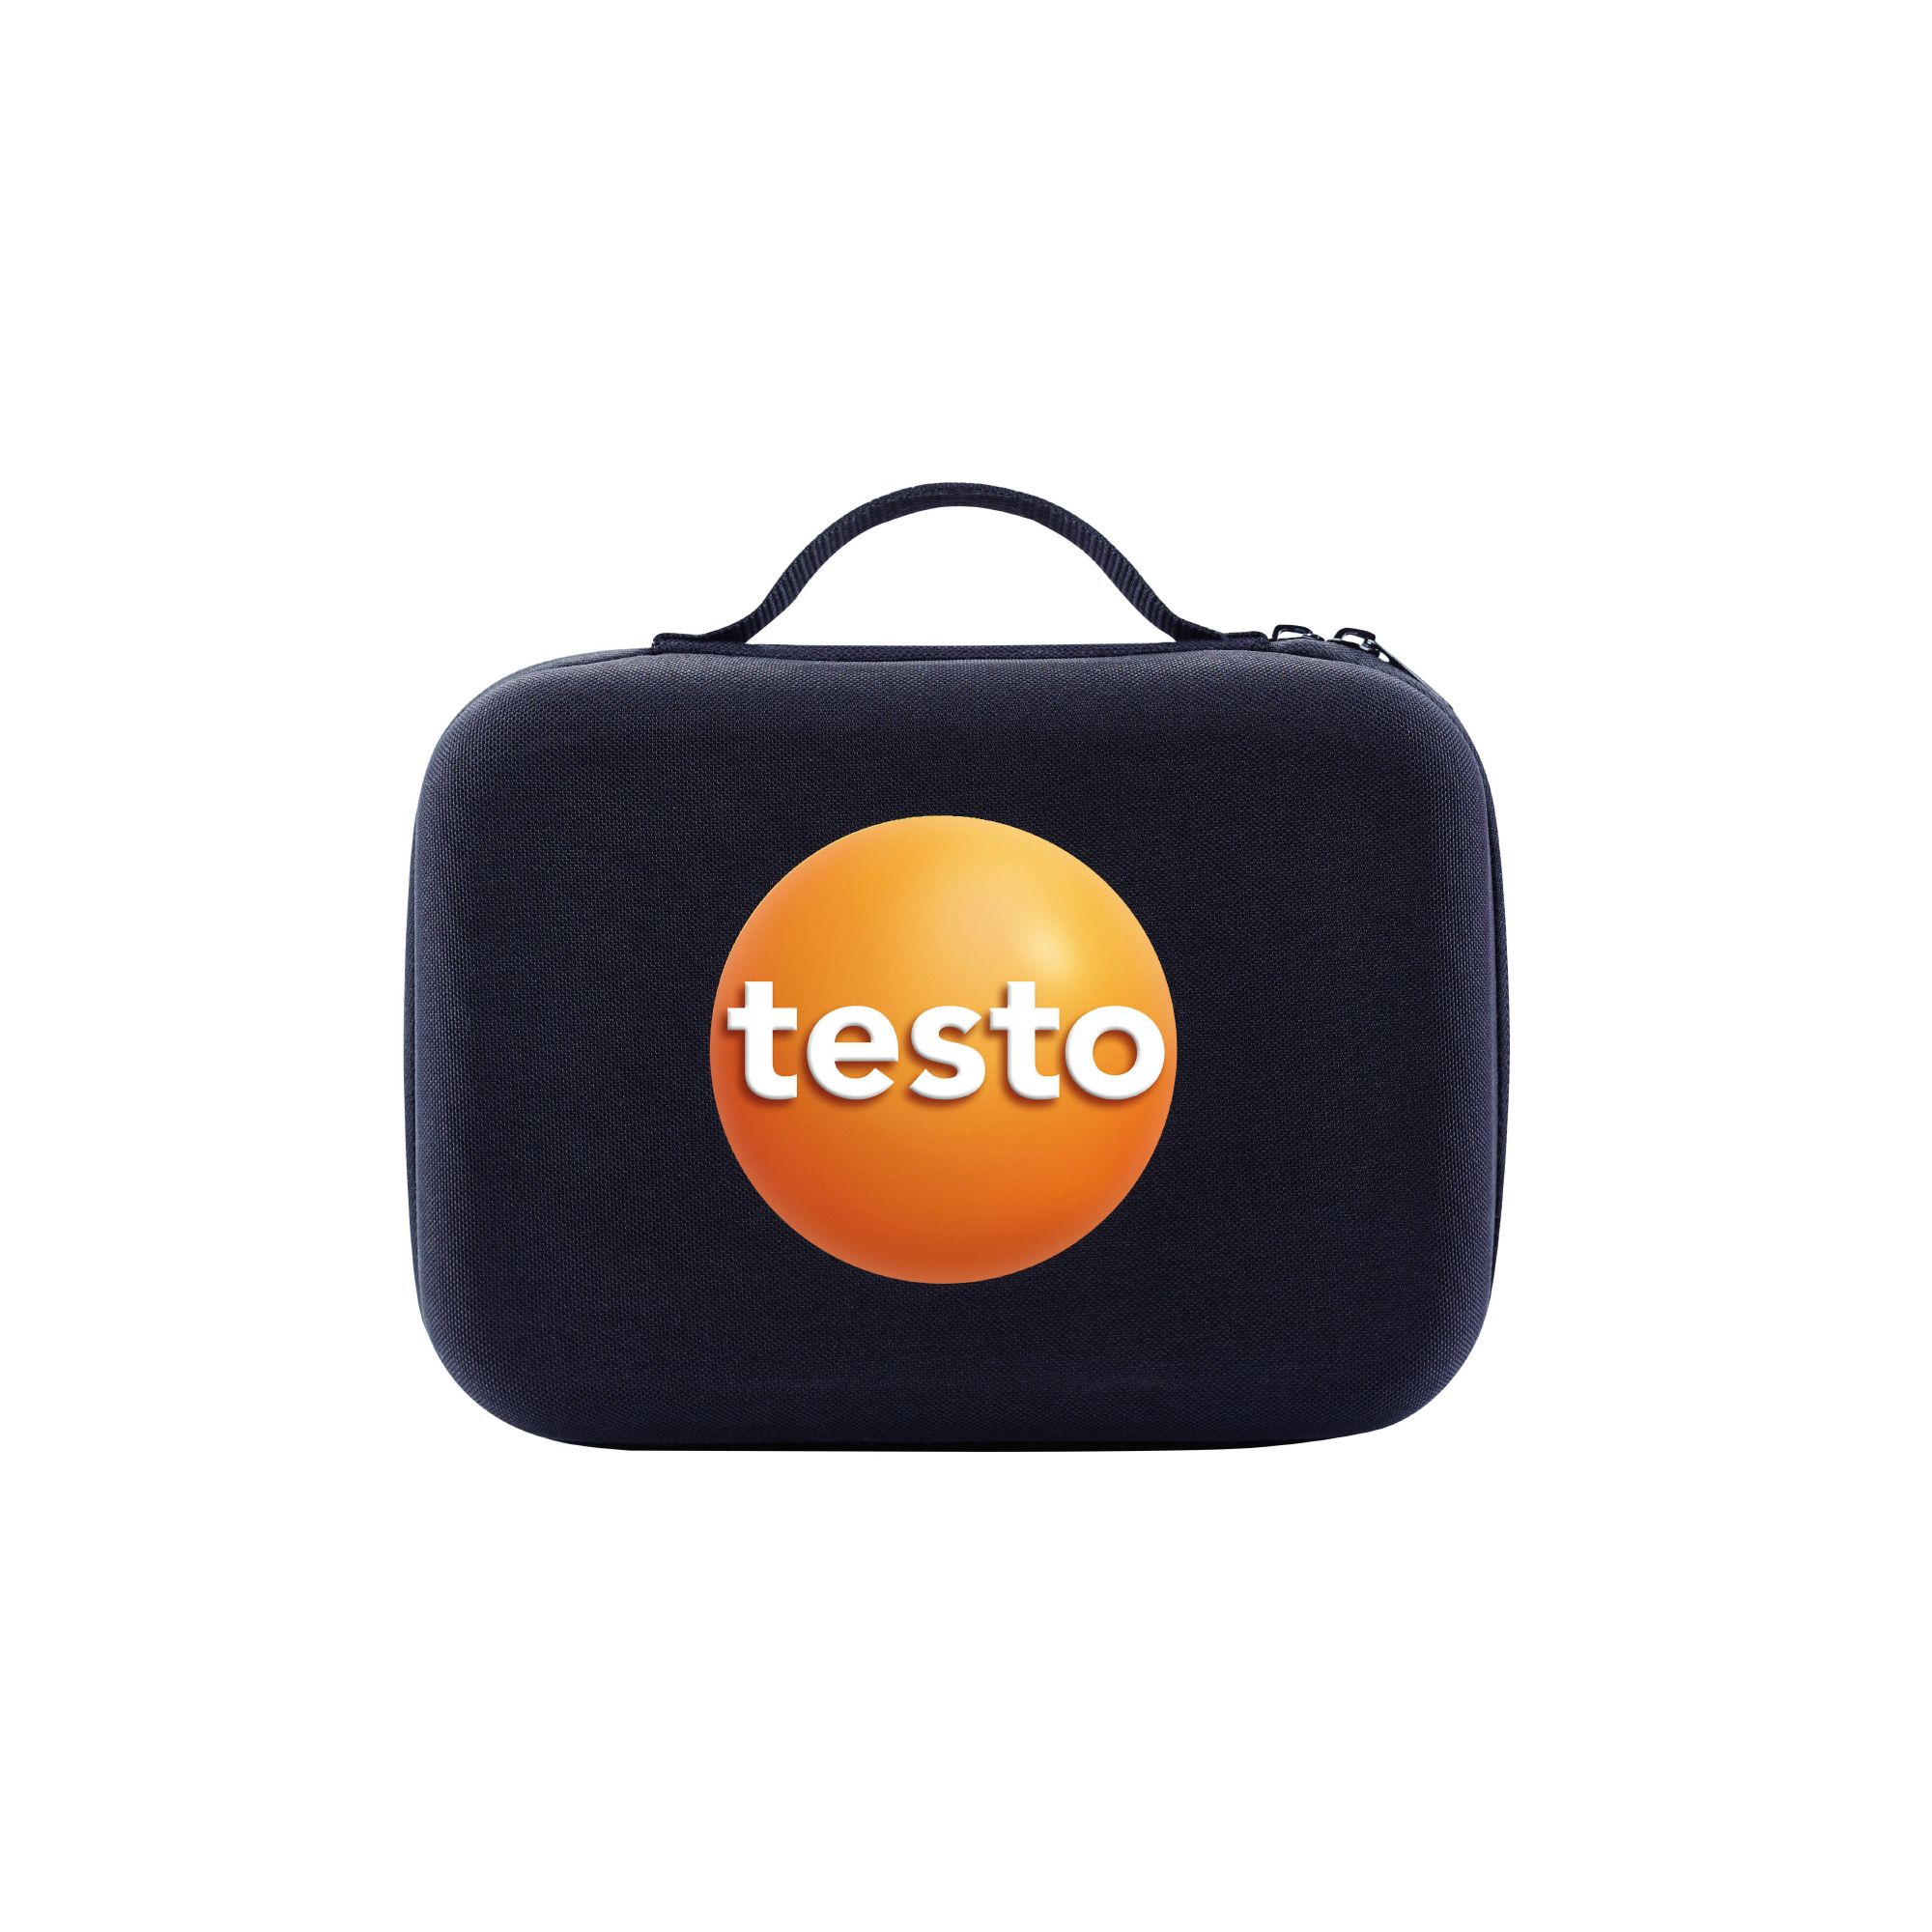 0516-0032-testo-smart-case-temperature.jpg